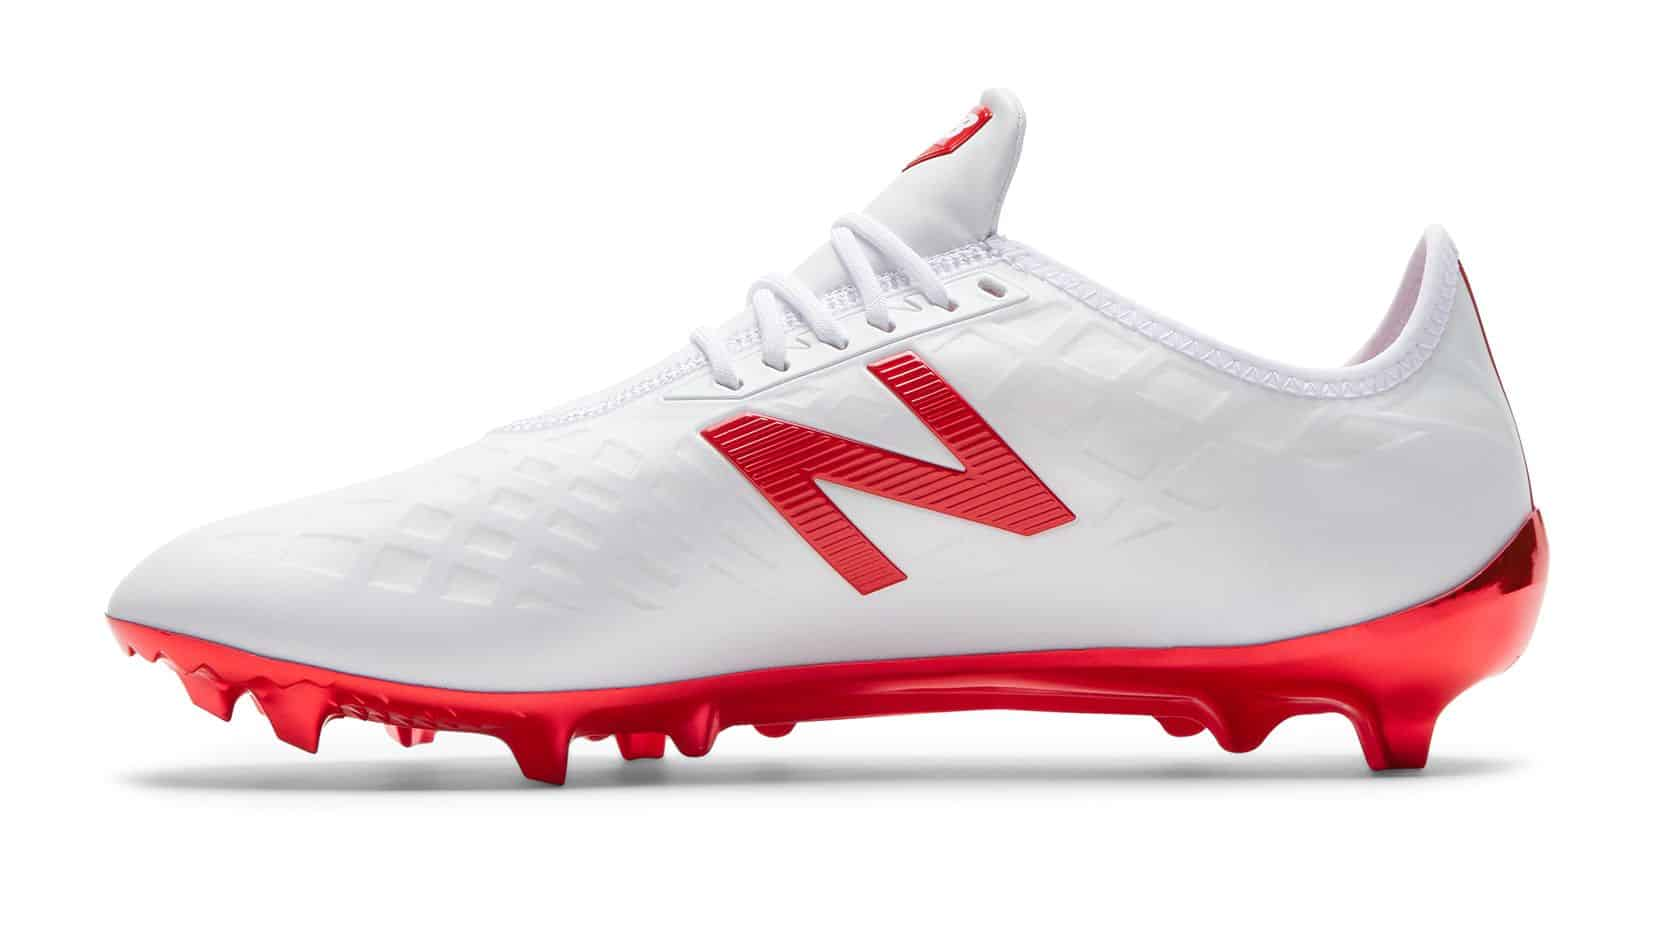 Chaussures-football-New-Balance-NB-Furon-mai-2018-2